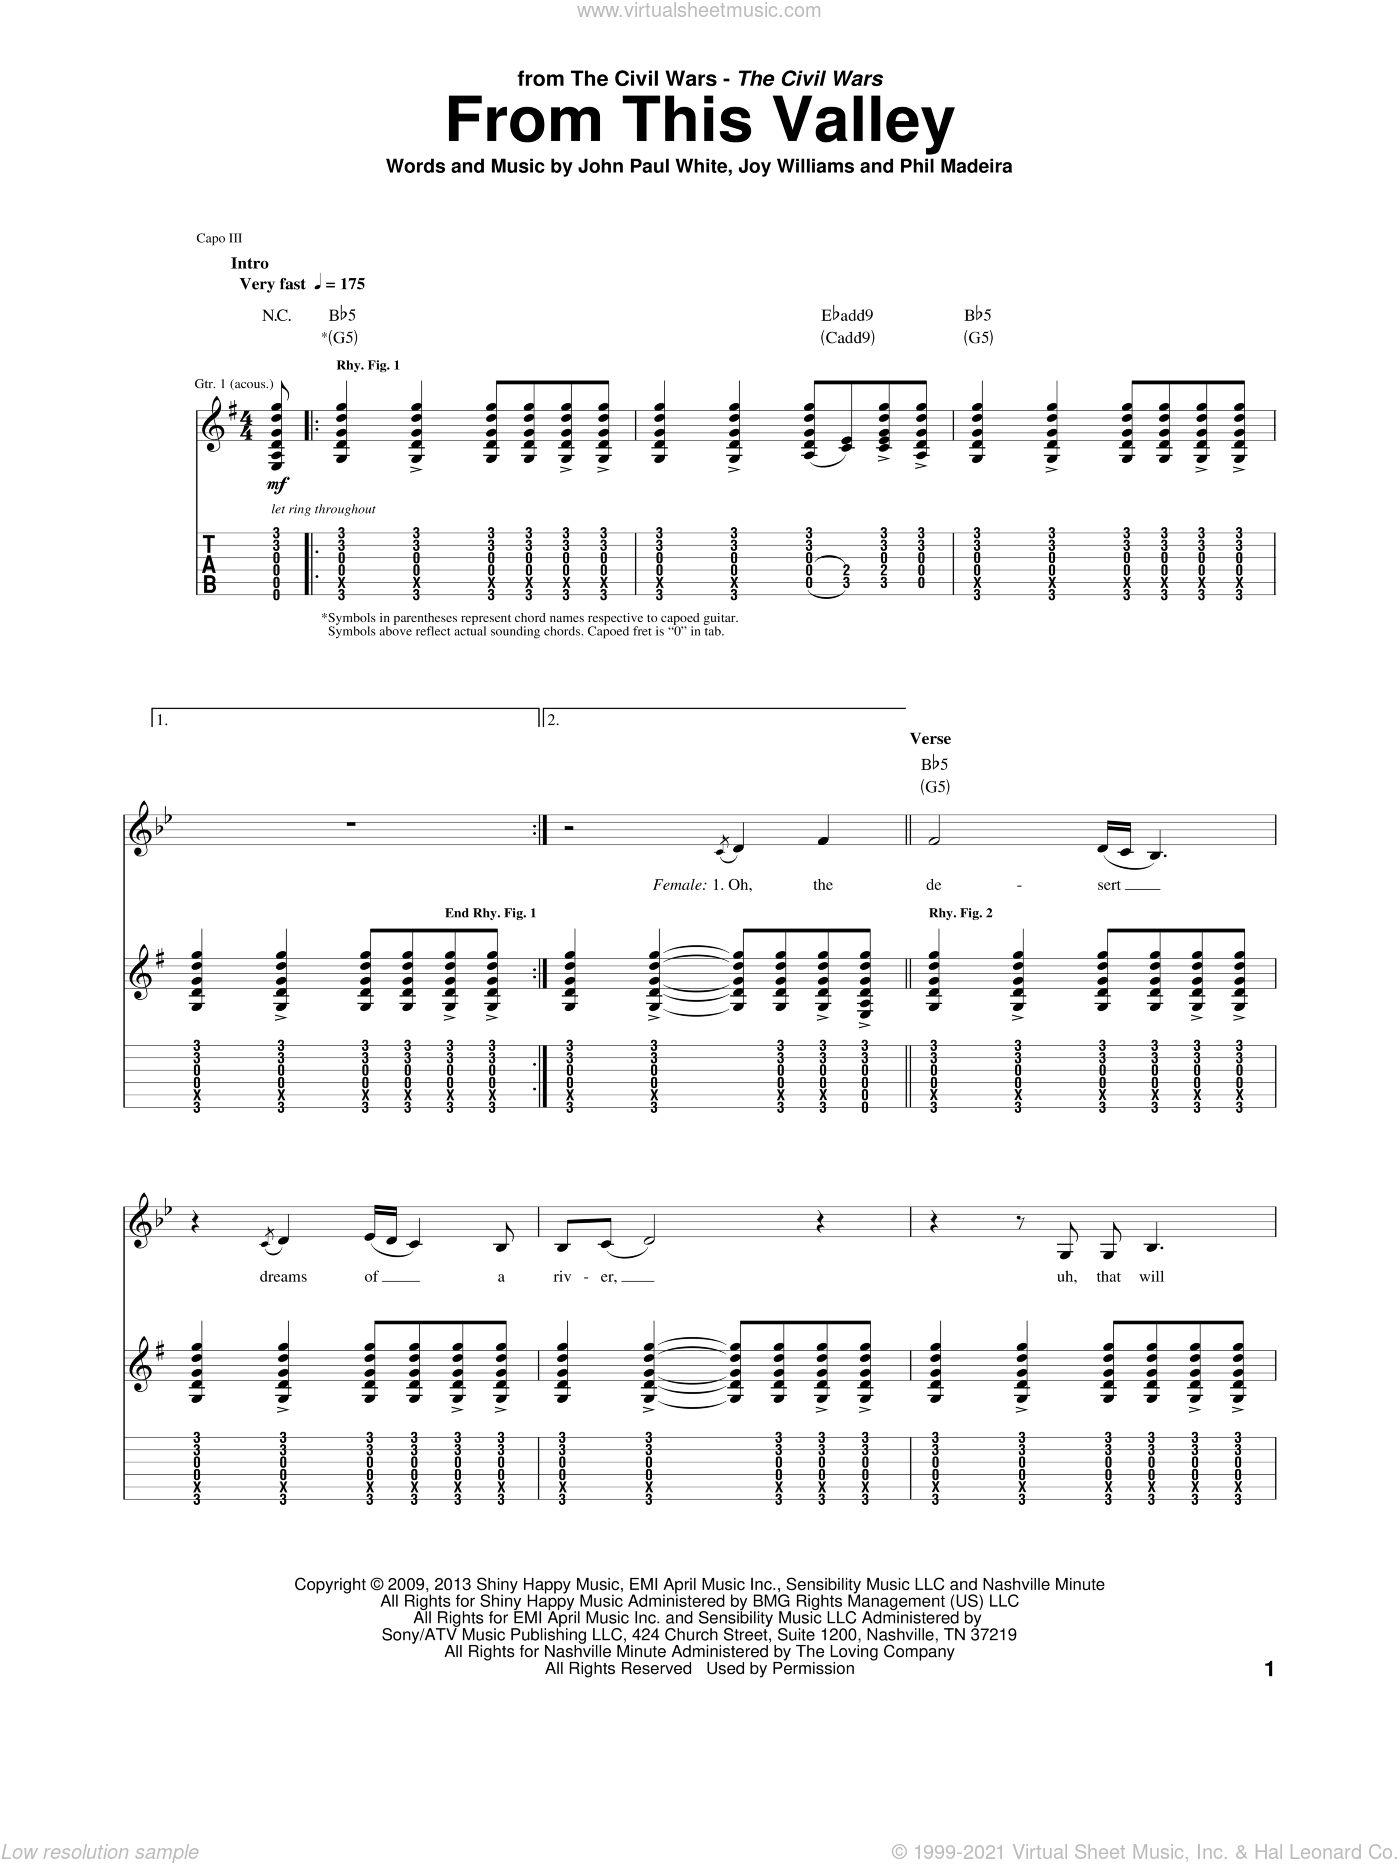 From This Valley sheet music for guitar (tablature) by The Civil Wars, John Paul White, Joy Williams and Phil Madeira, intermediate skill level